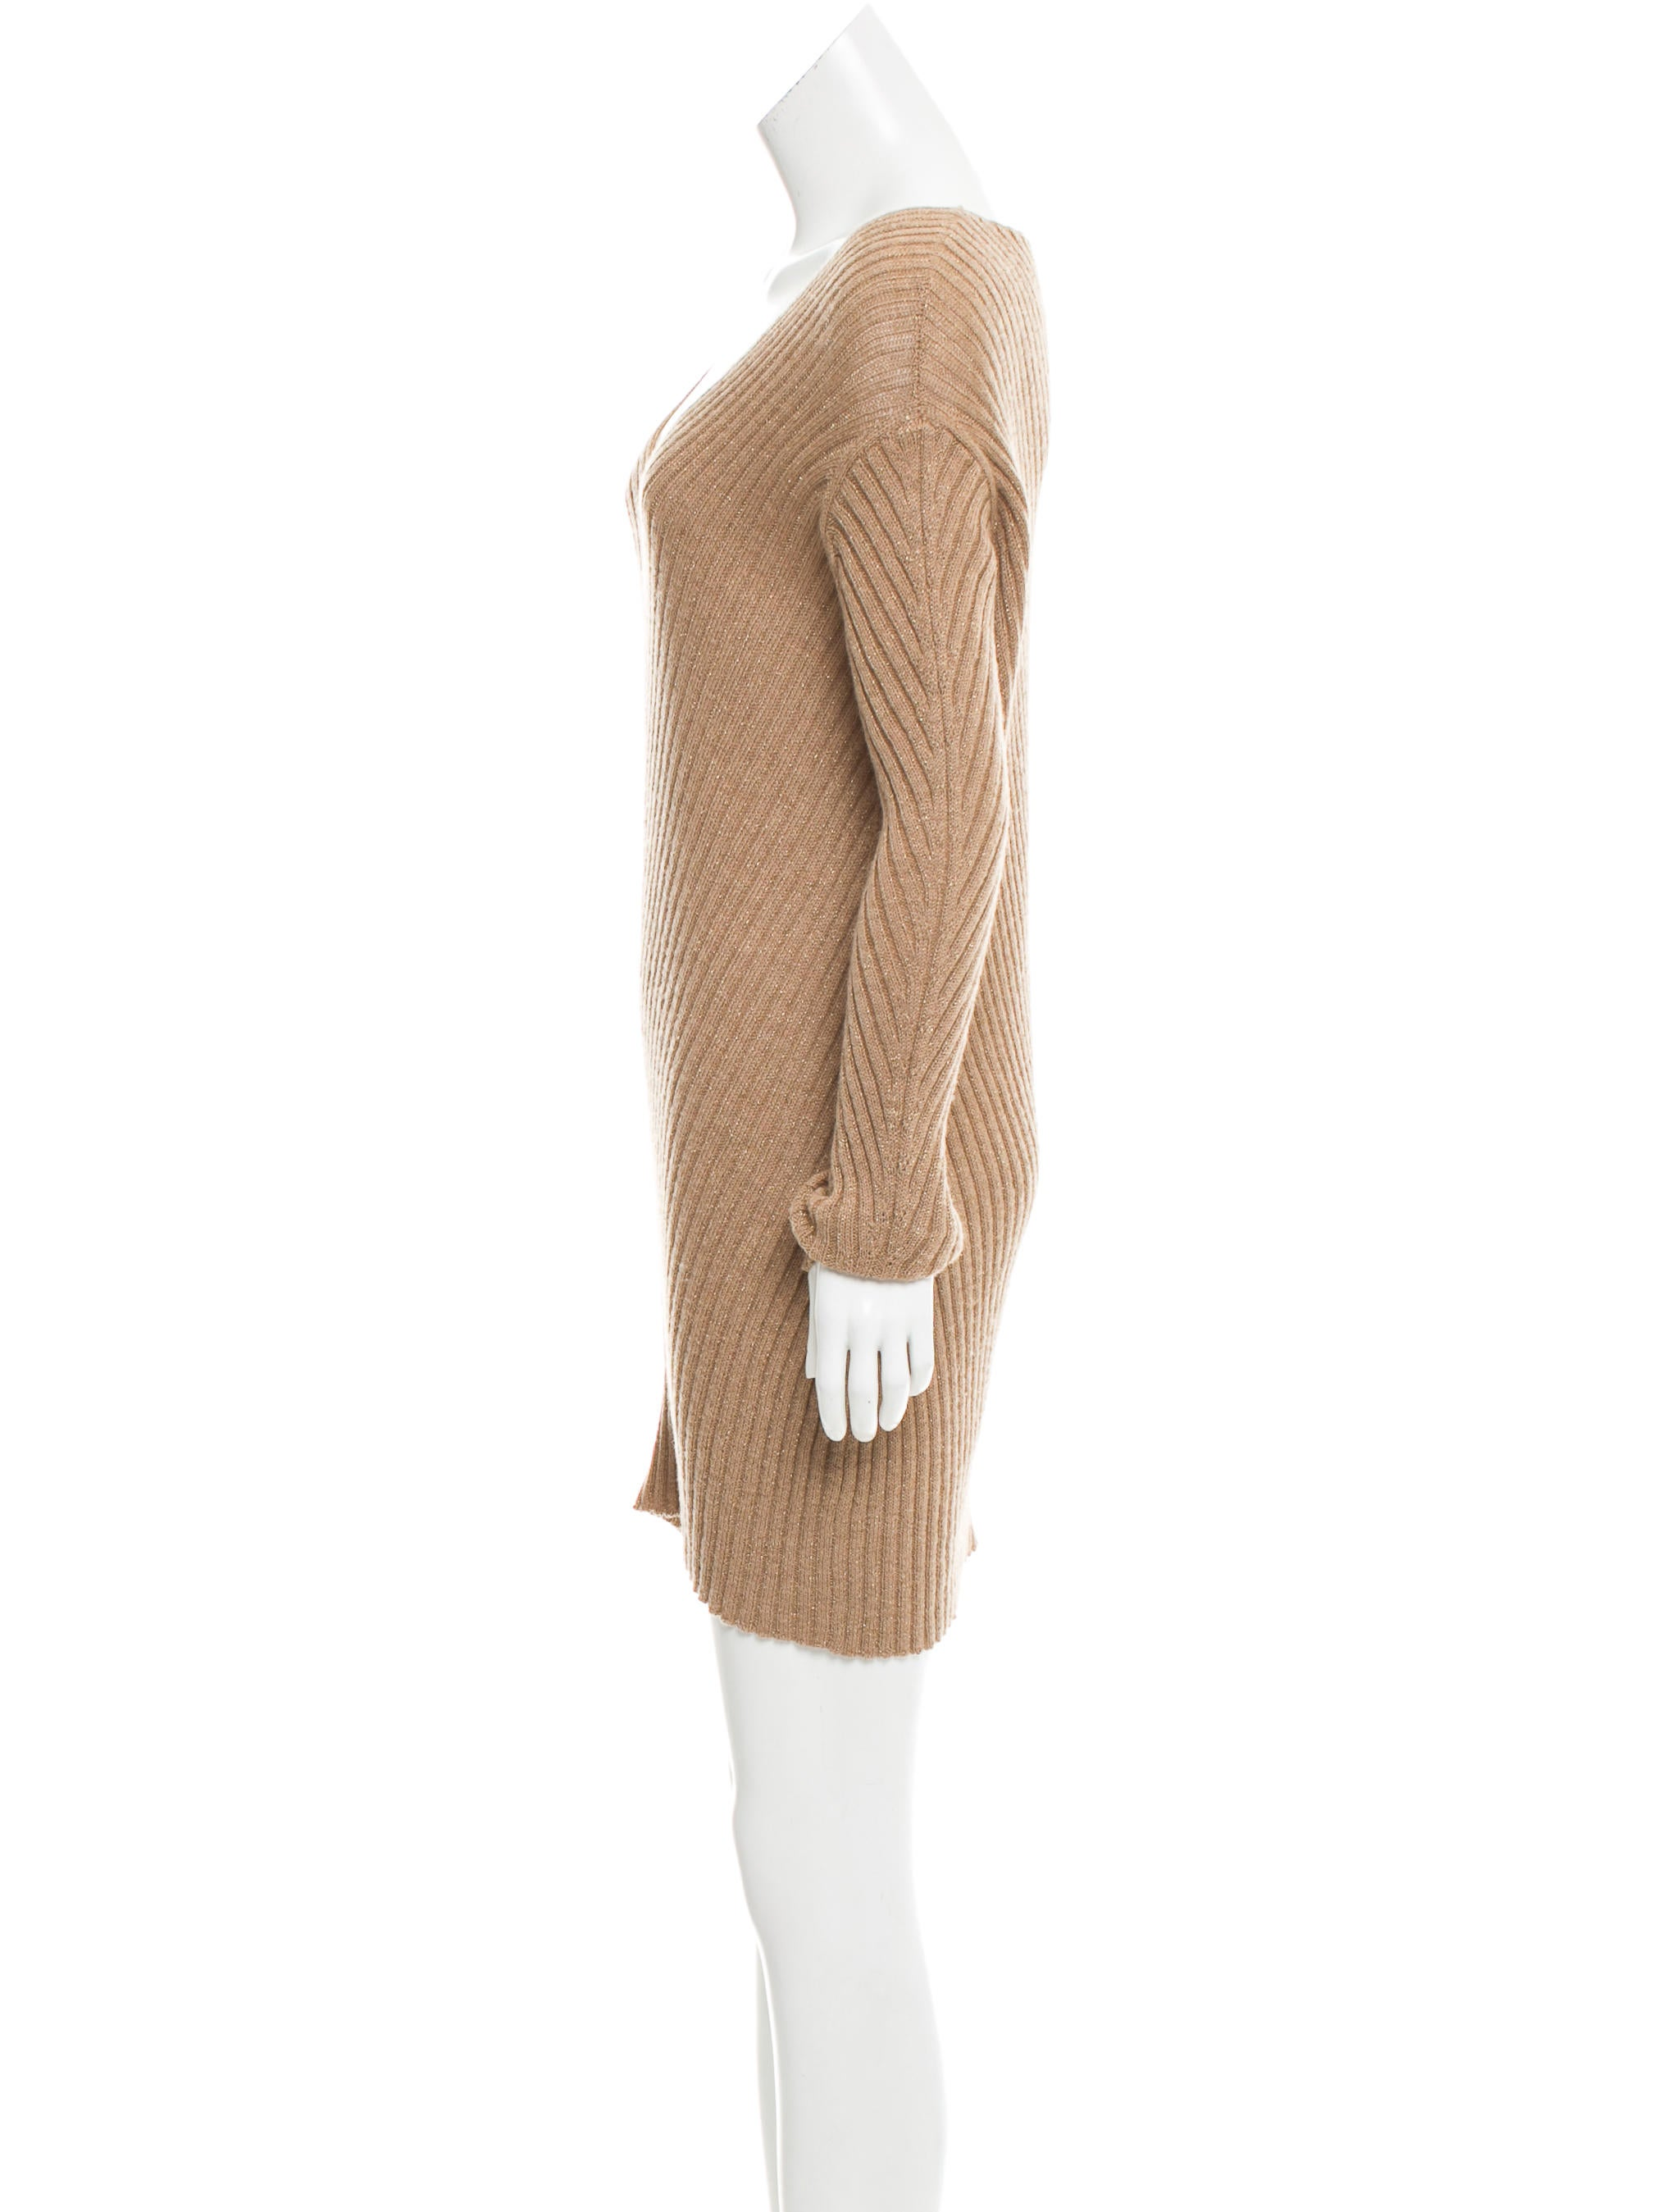 Miu Miu Rib Knit Wool Dress - Clothing - MIU47003 The RealReal